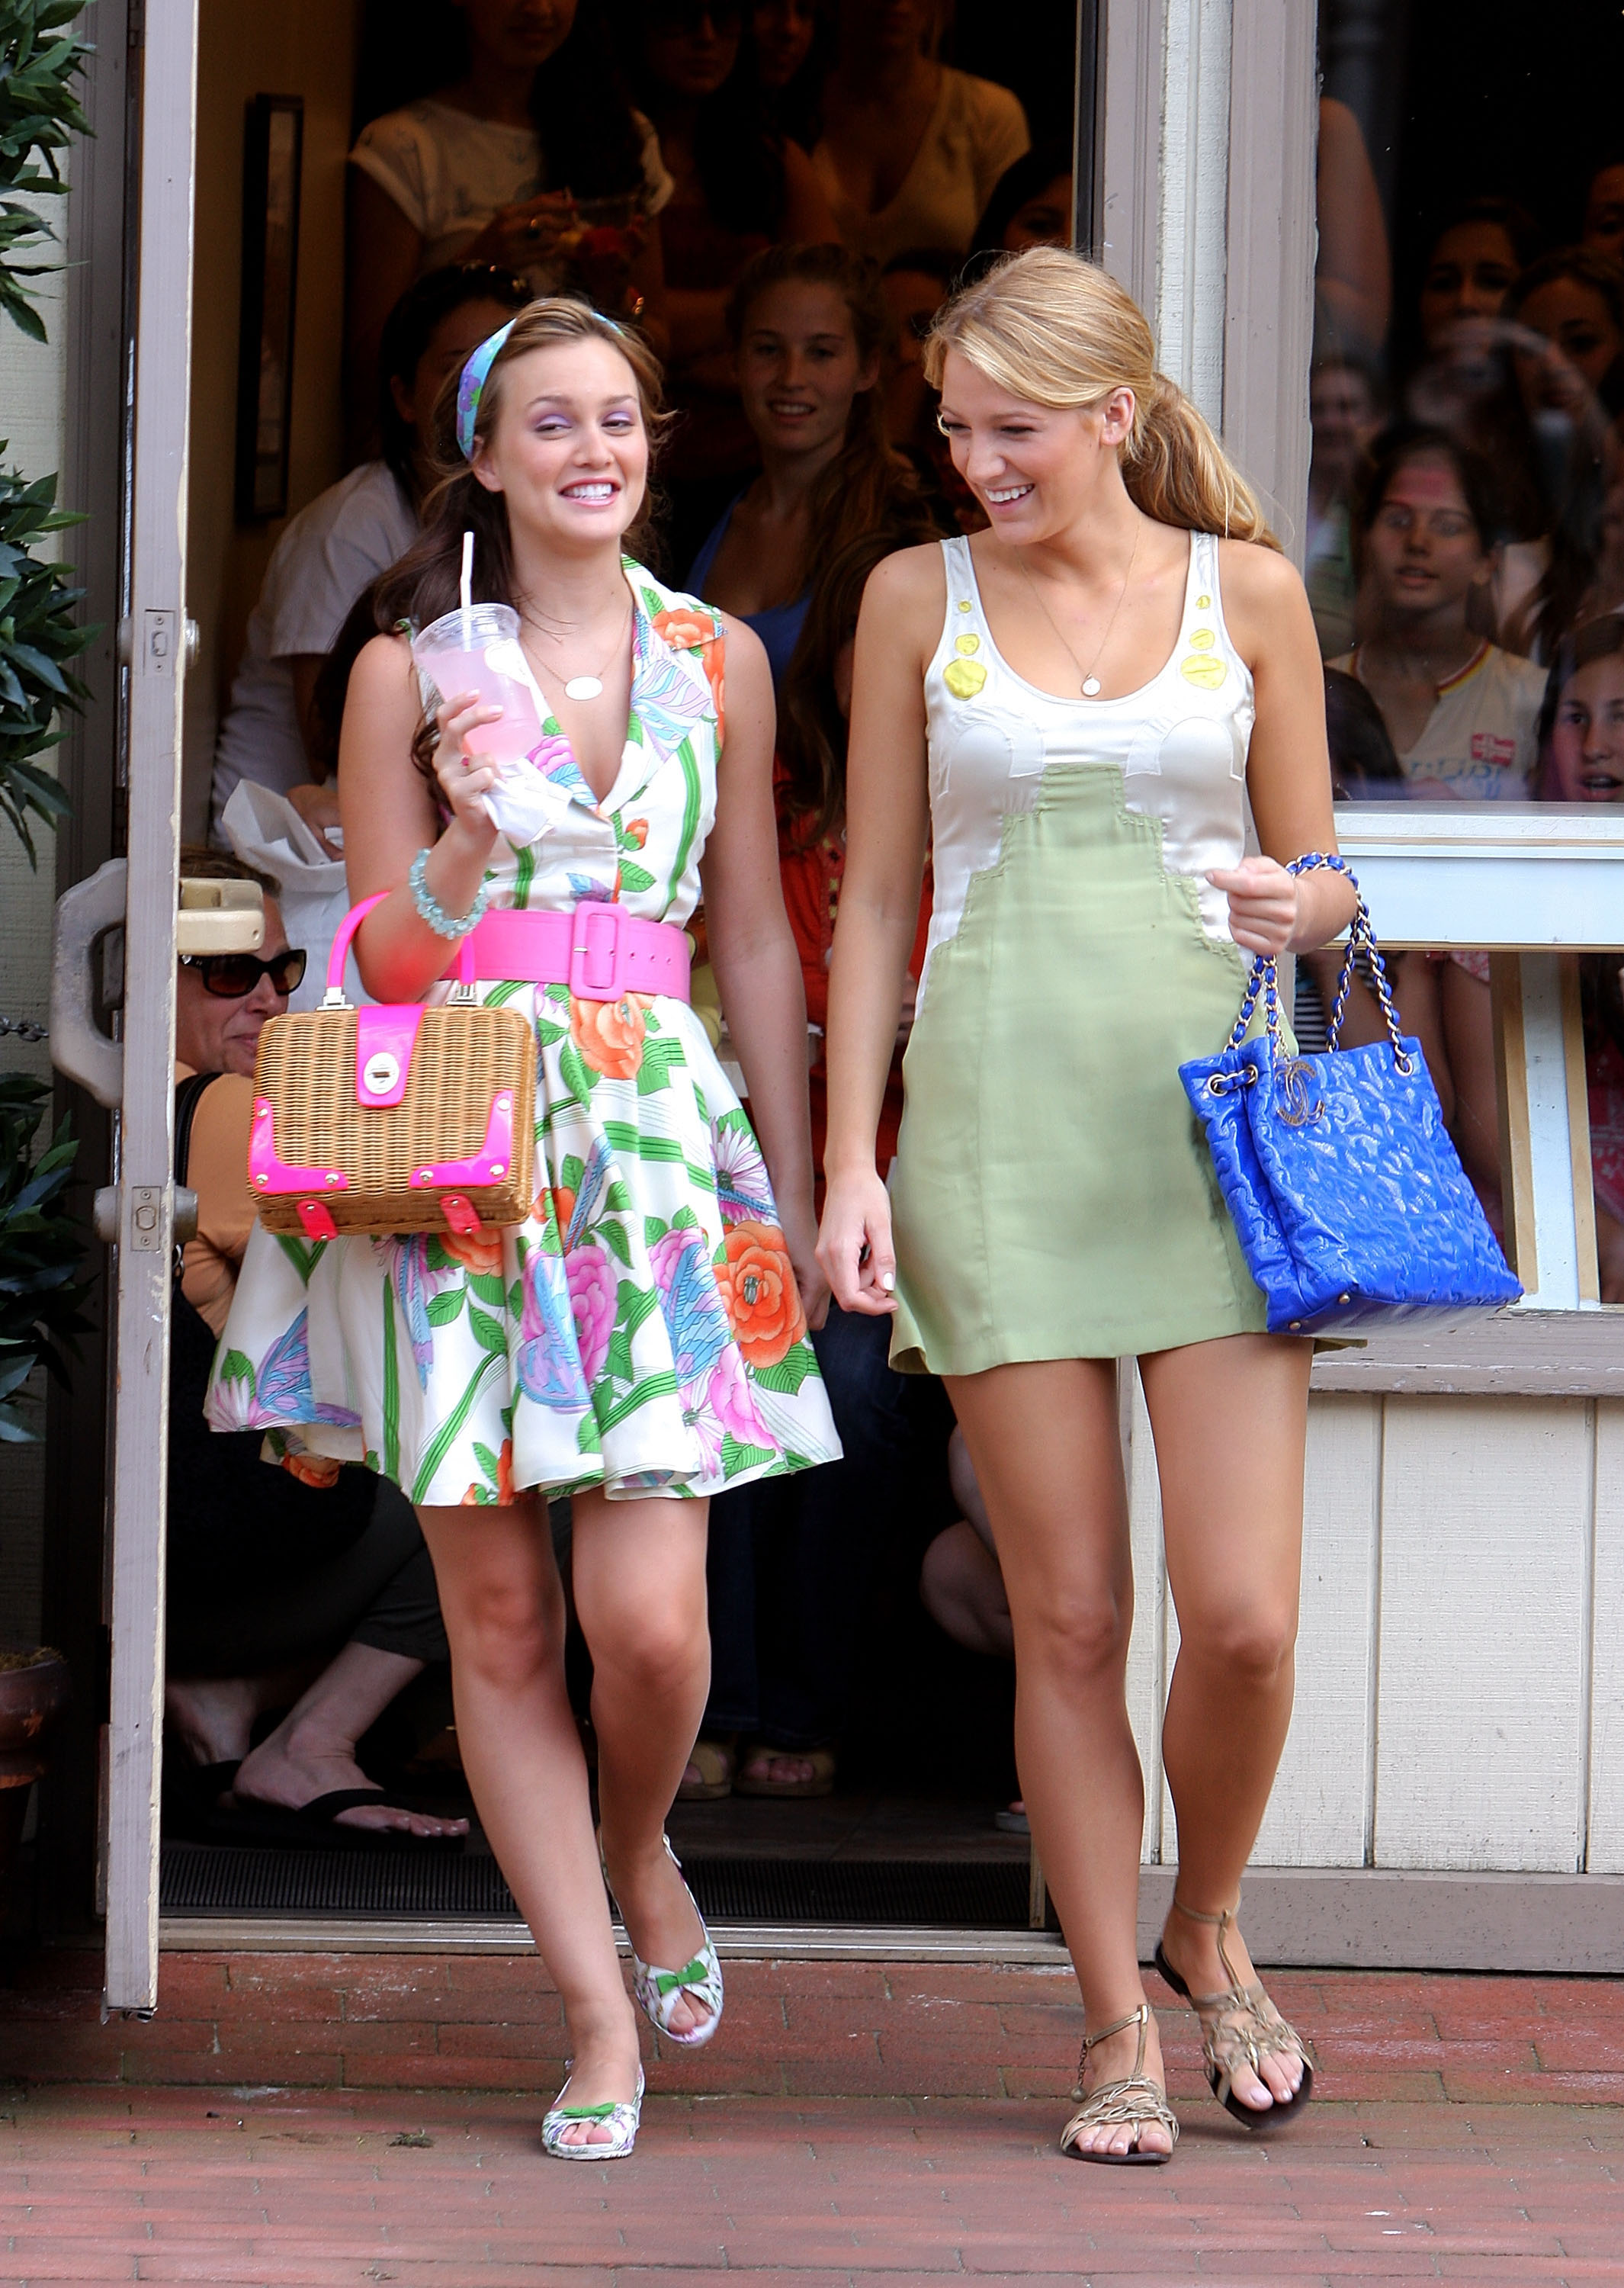 Sharing a laugh while cameras were rolling, Leighton Meester and Bl